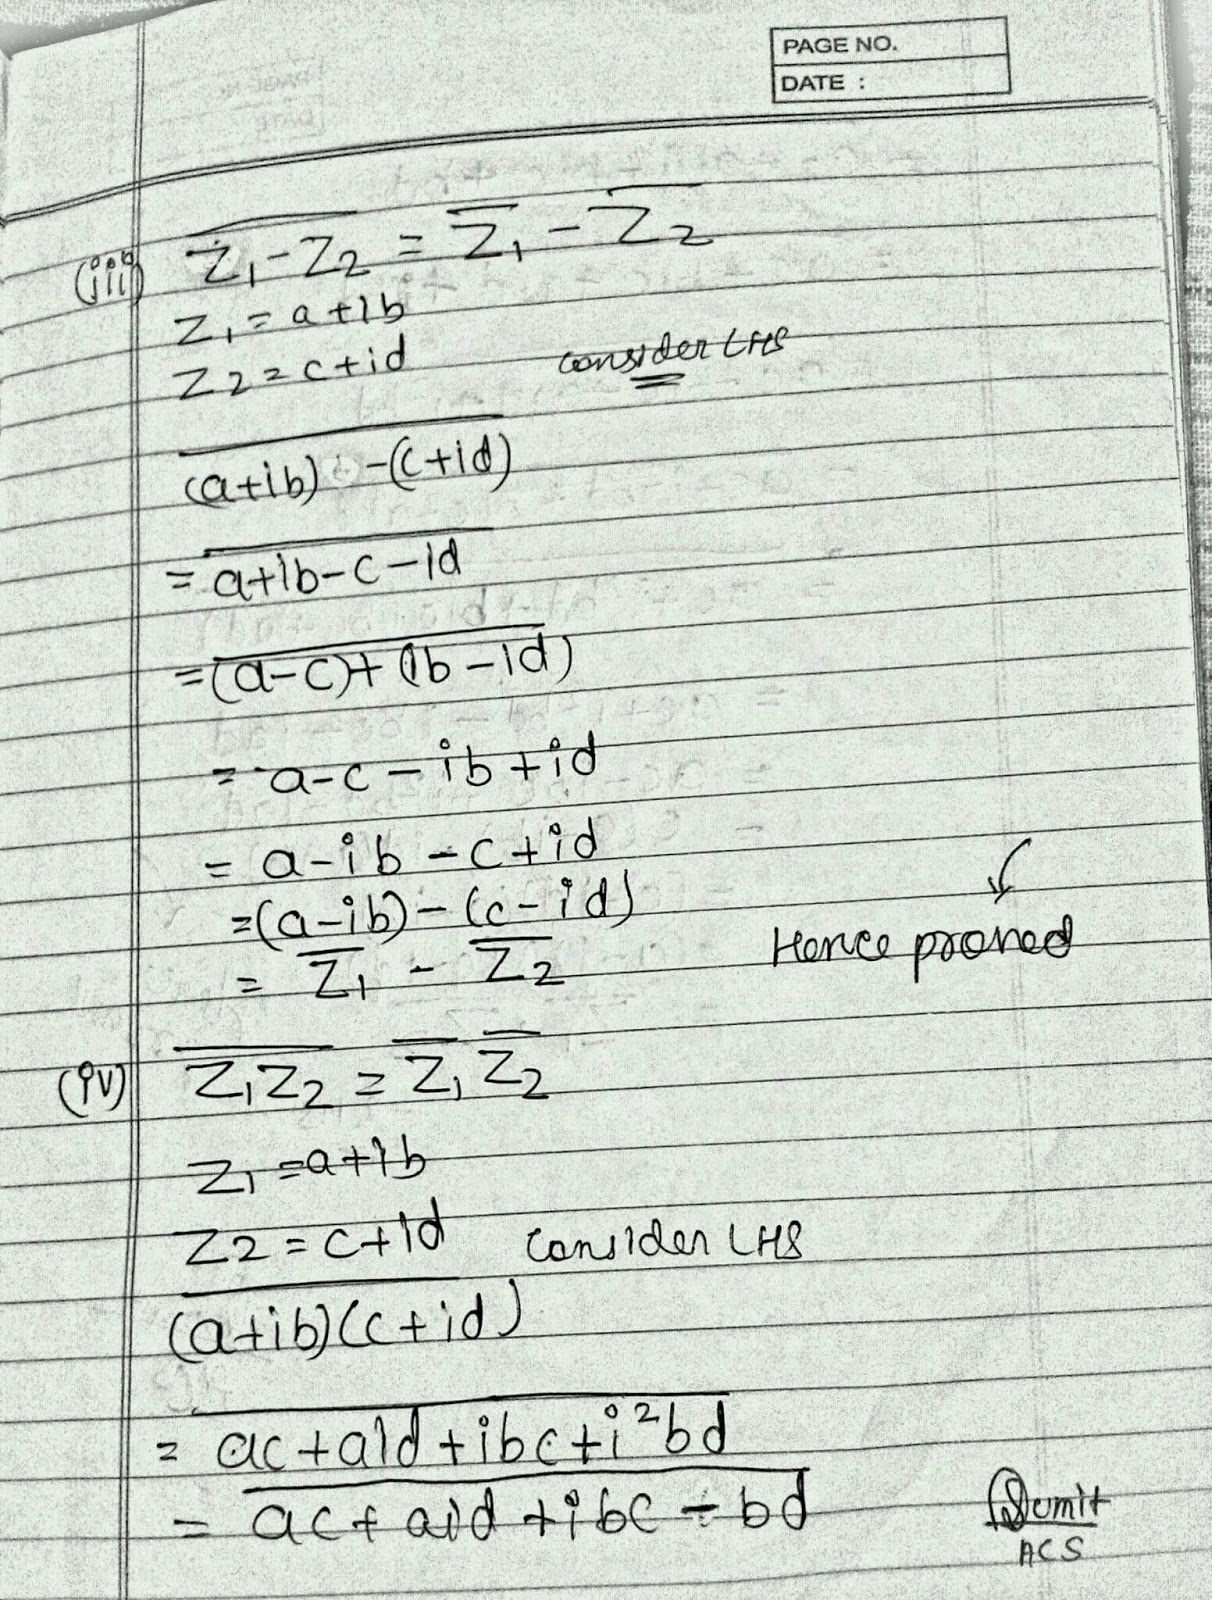 ALL CBSE STUFF ©: Properties of Conjugate with